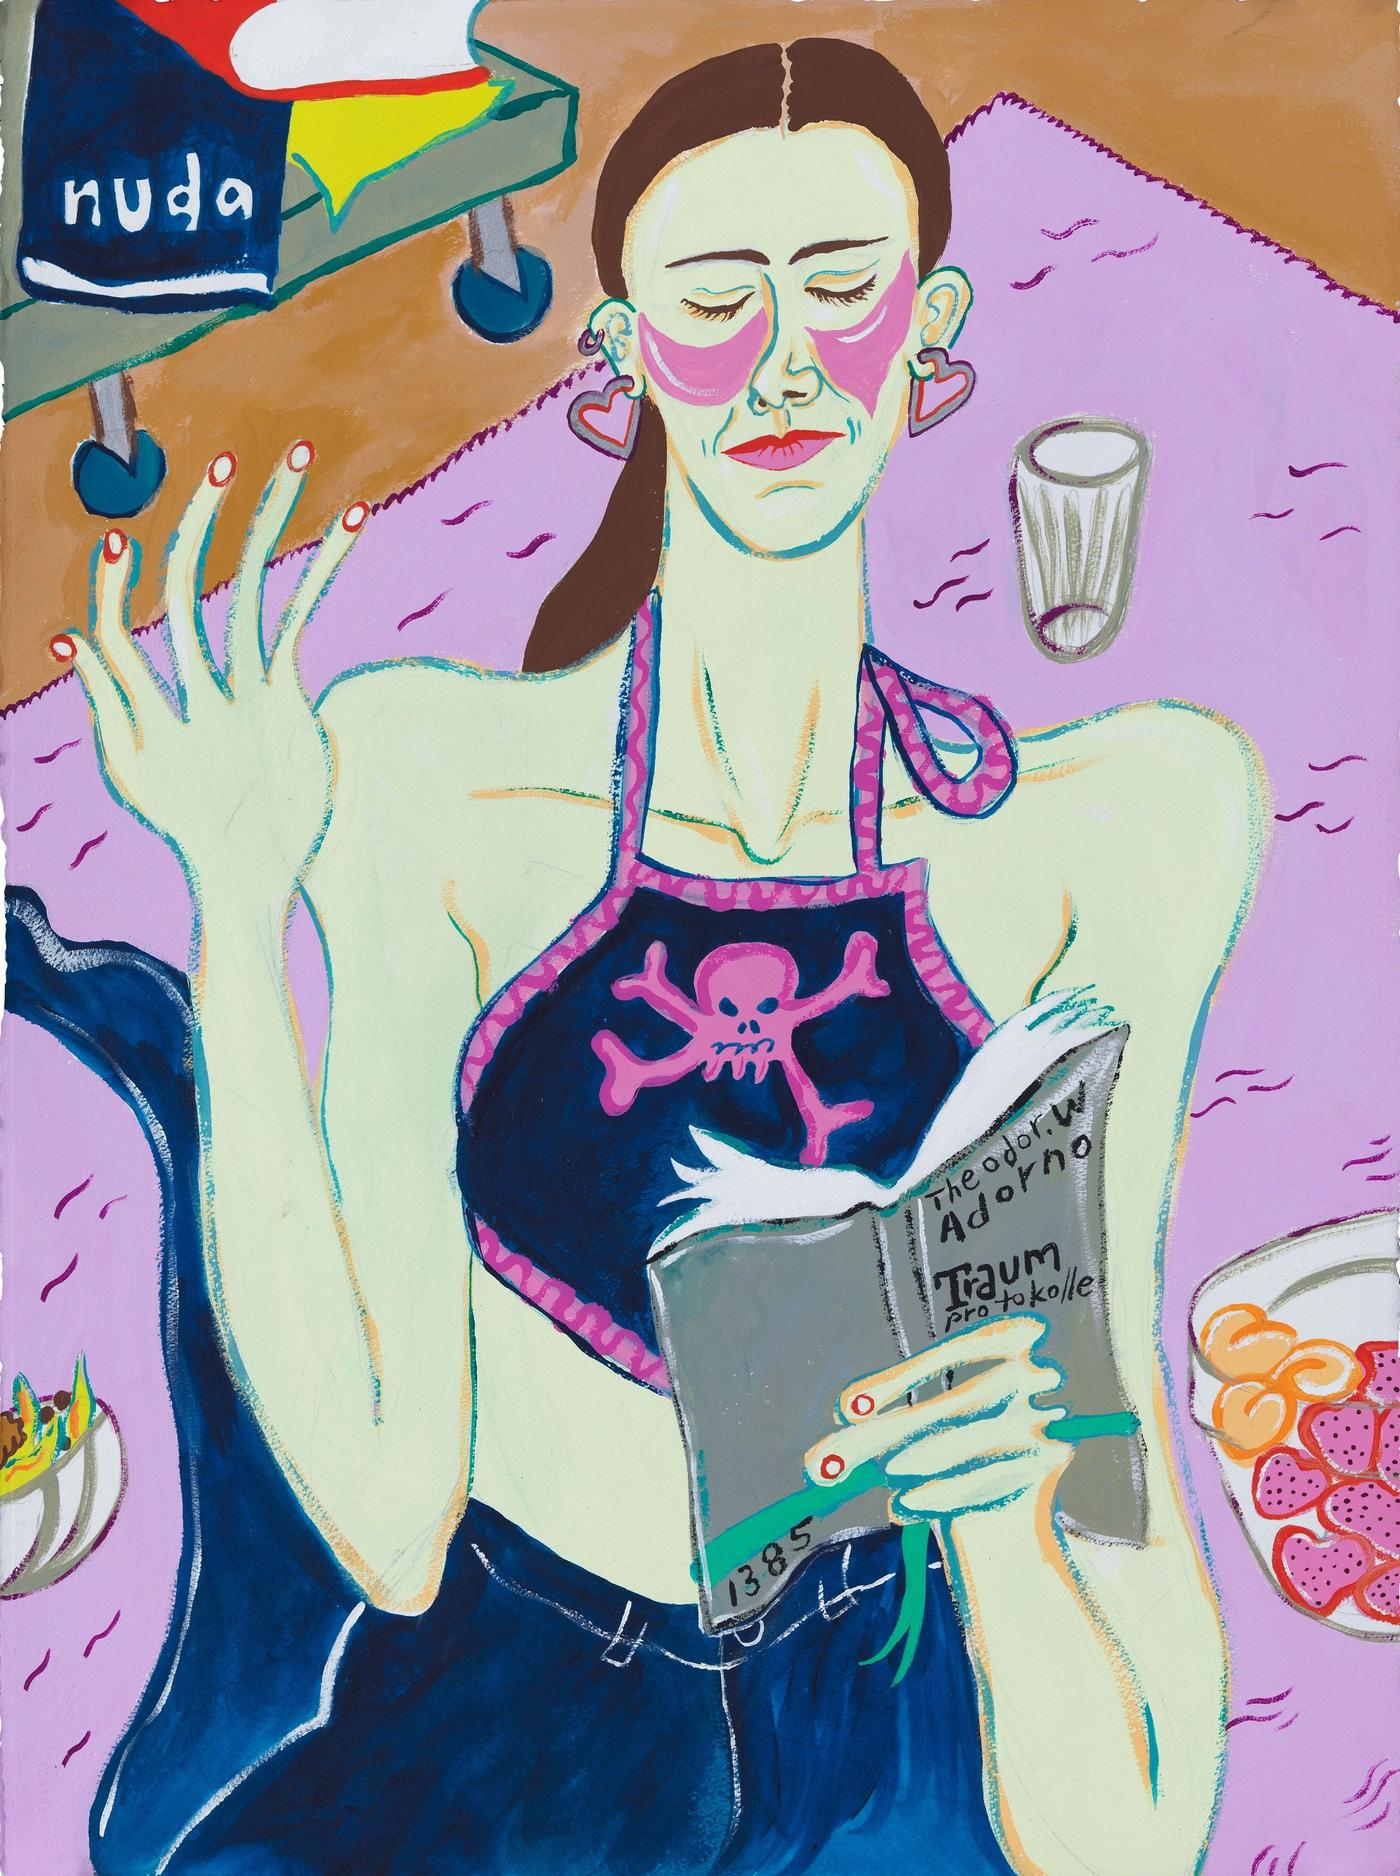 Image of Donnna Translating Adorno's Dream Journal In Situ, 2020: Gouache on paper